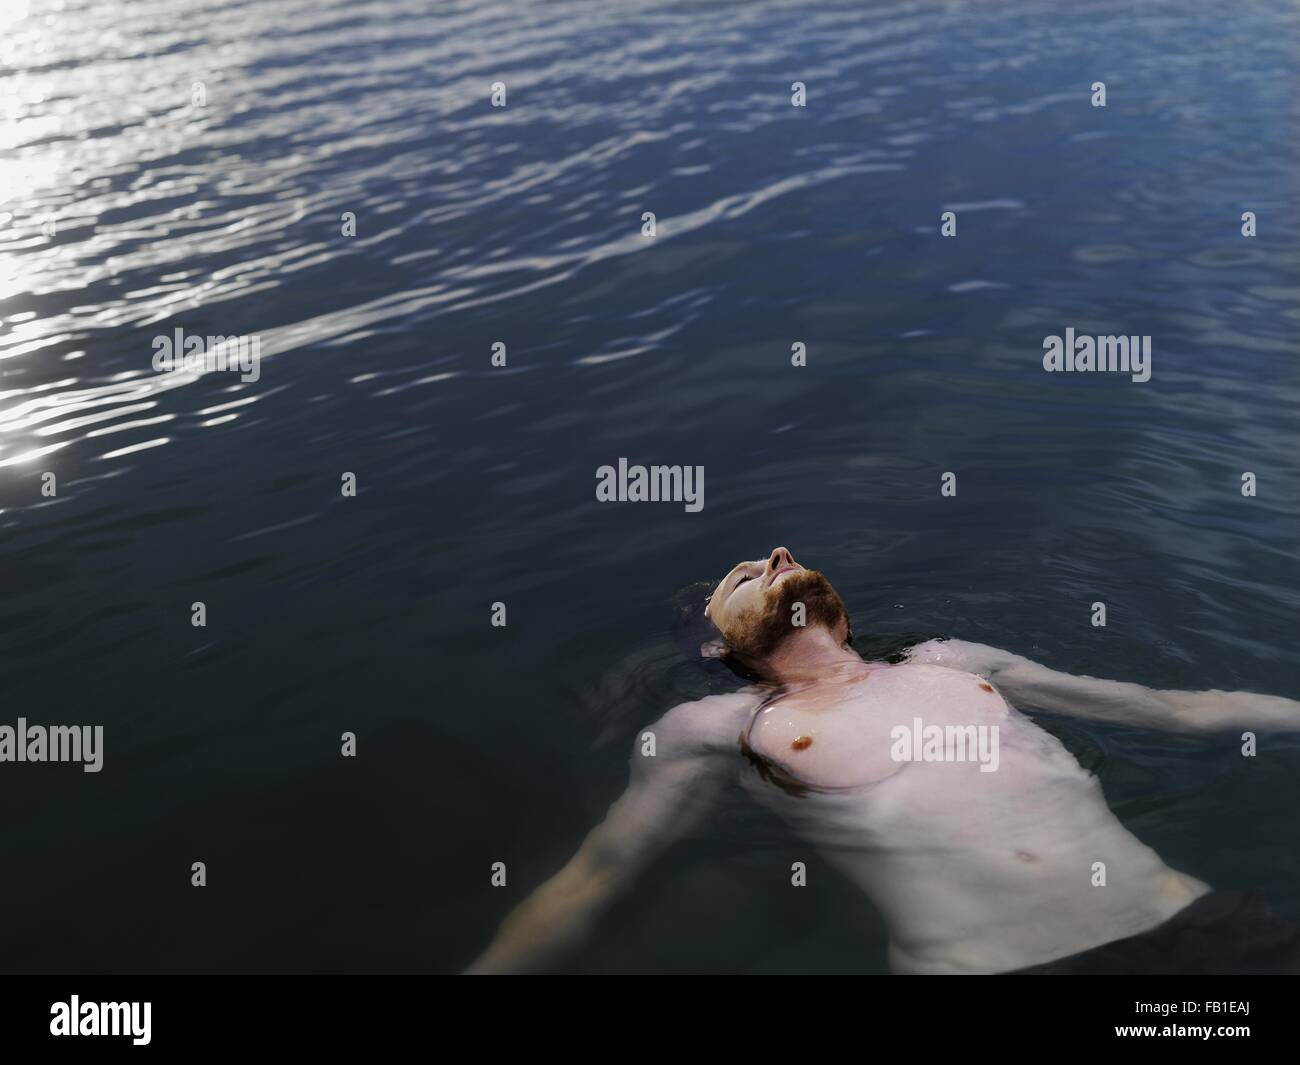 High Angle View Of Young Man Floating On Back In Water Arms Outstretched Looking Up